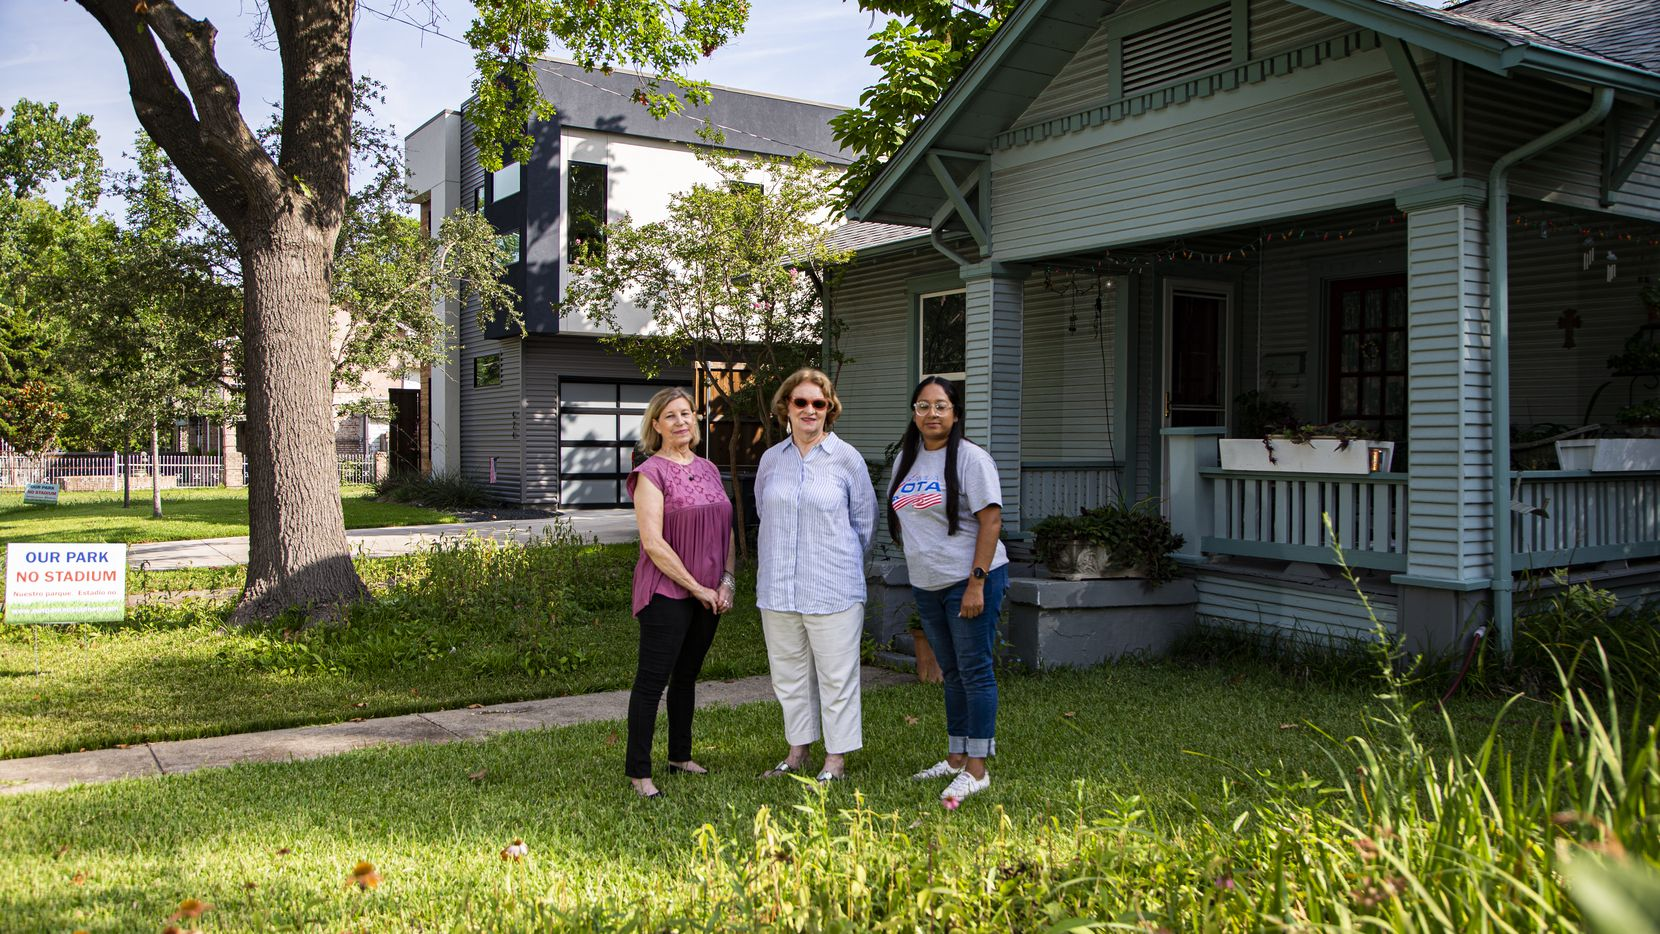 Jeanne Chvosta (from left), Karen Roberts and Sarah Mendoza in front of Roberts' home in the Mount Auburn neighborhood. High property taxes, especially due to new construction such as the house next door to Roberts' home, threaten to push longtime residents out of the area.